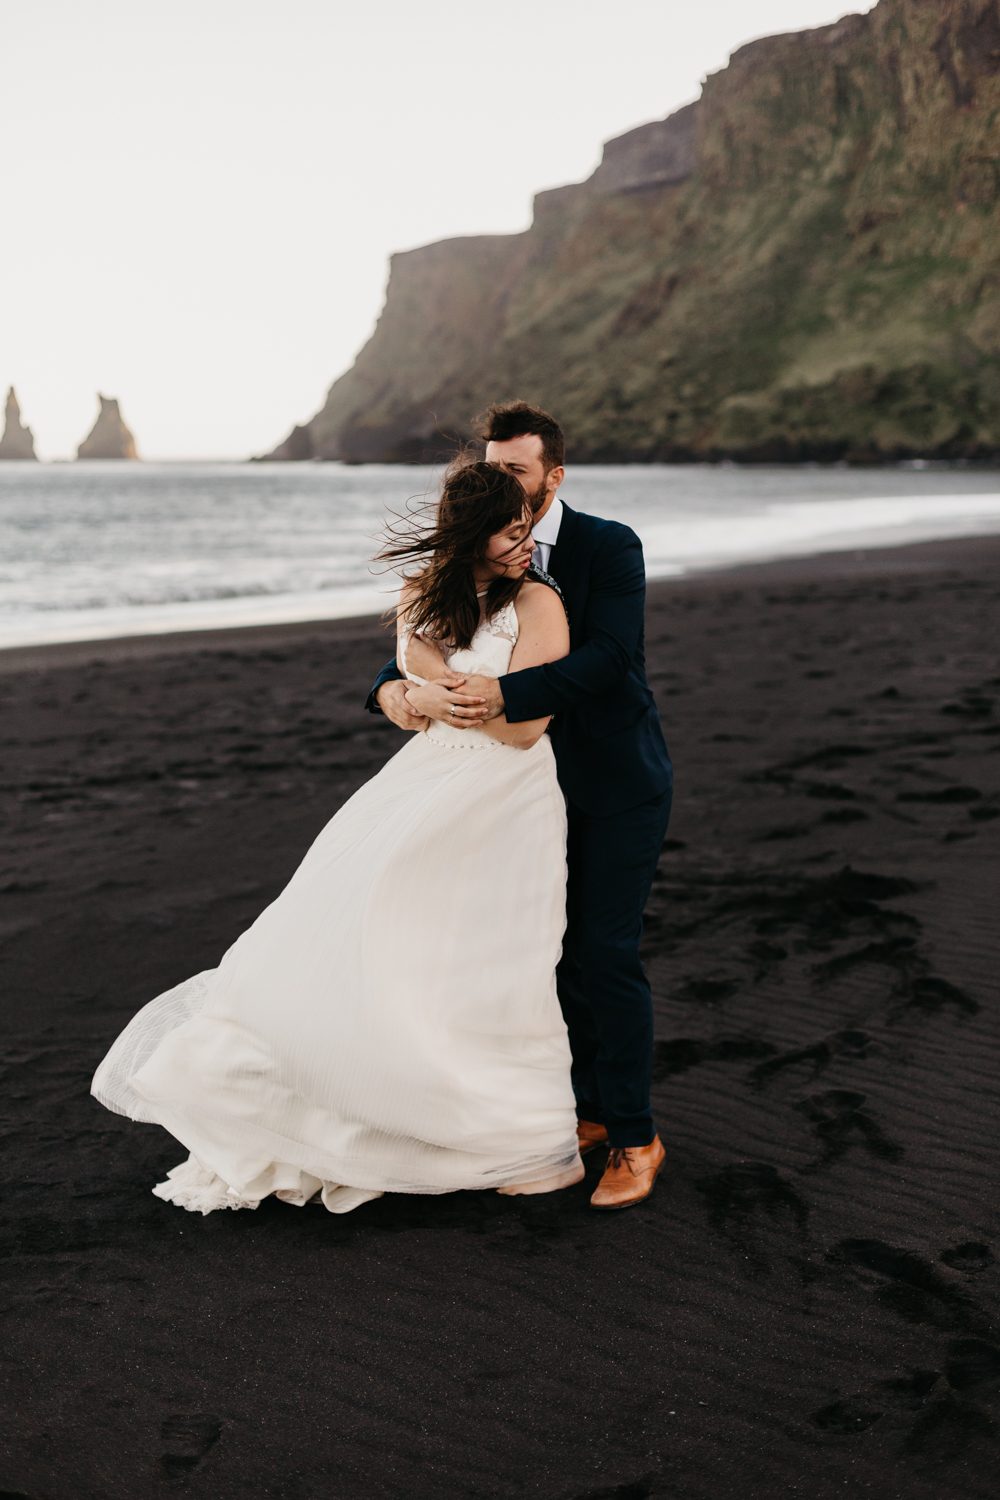 anna szczekutowicz iceland wedding photogapher elopement photographer-114.jpg